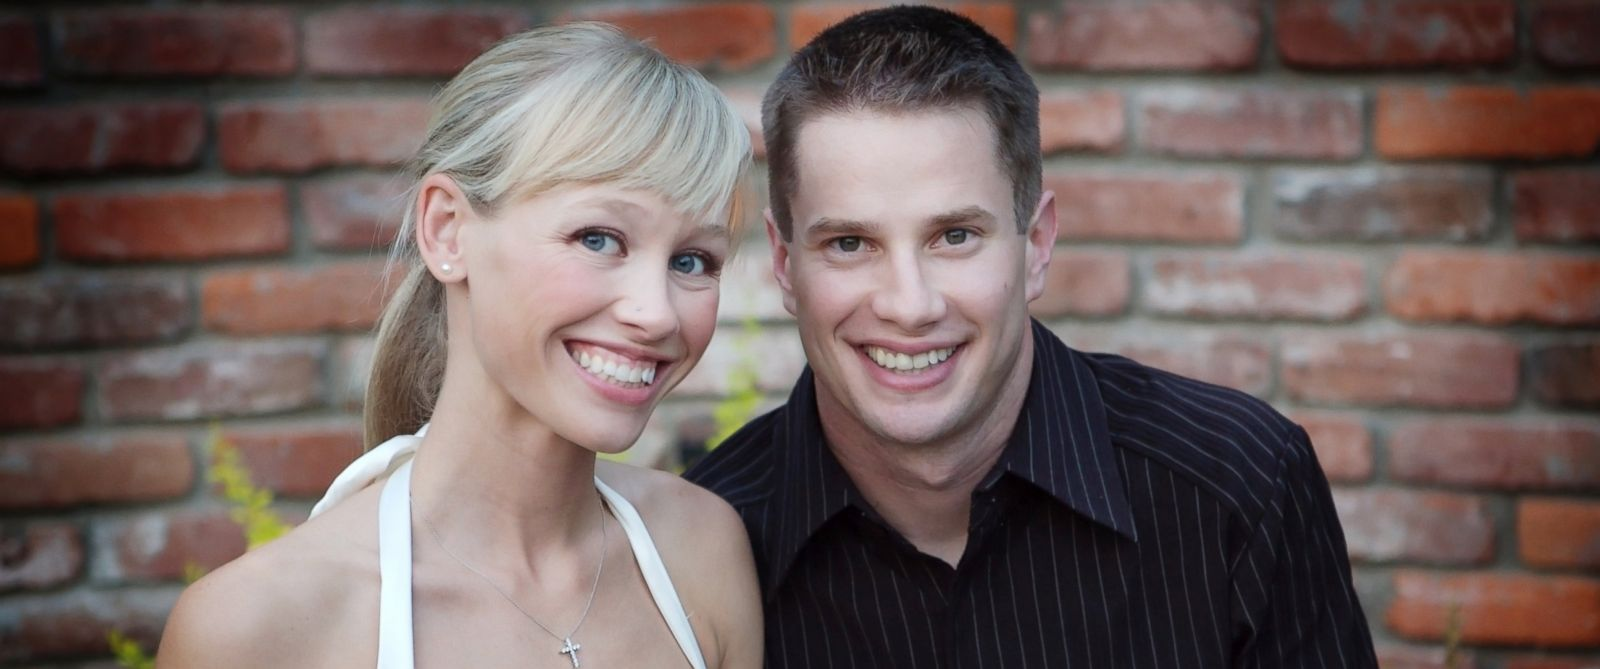 PHOTO: Keith and Sherri Papini.